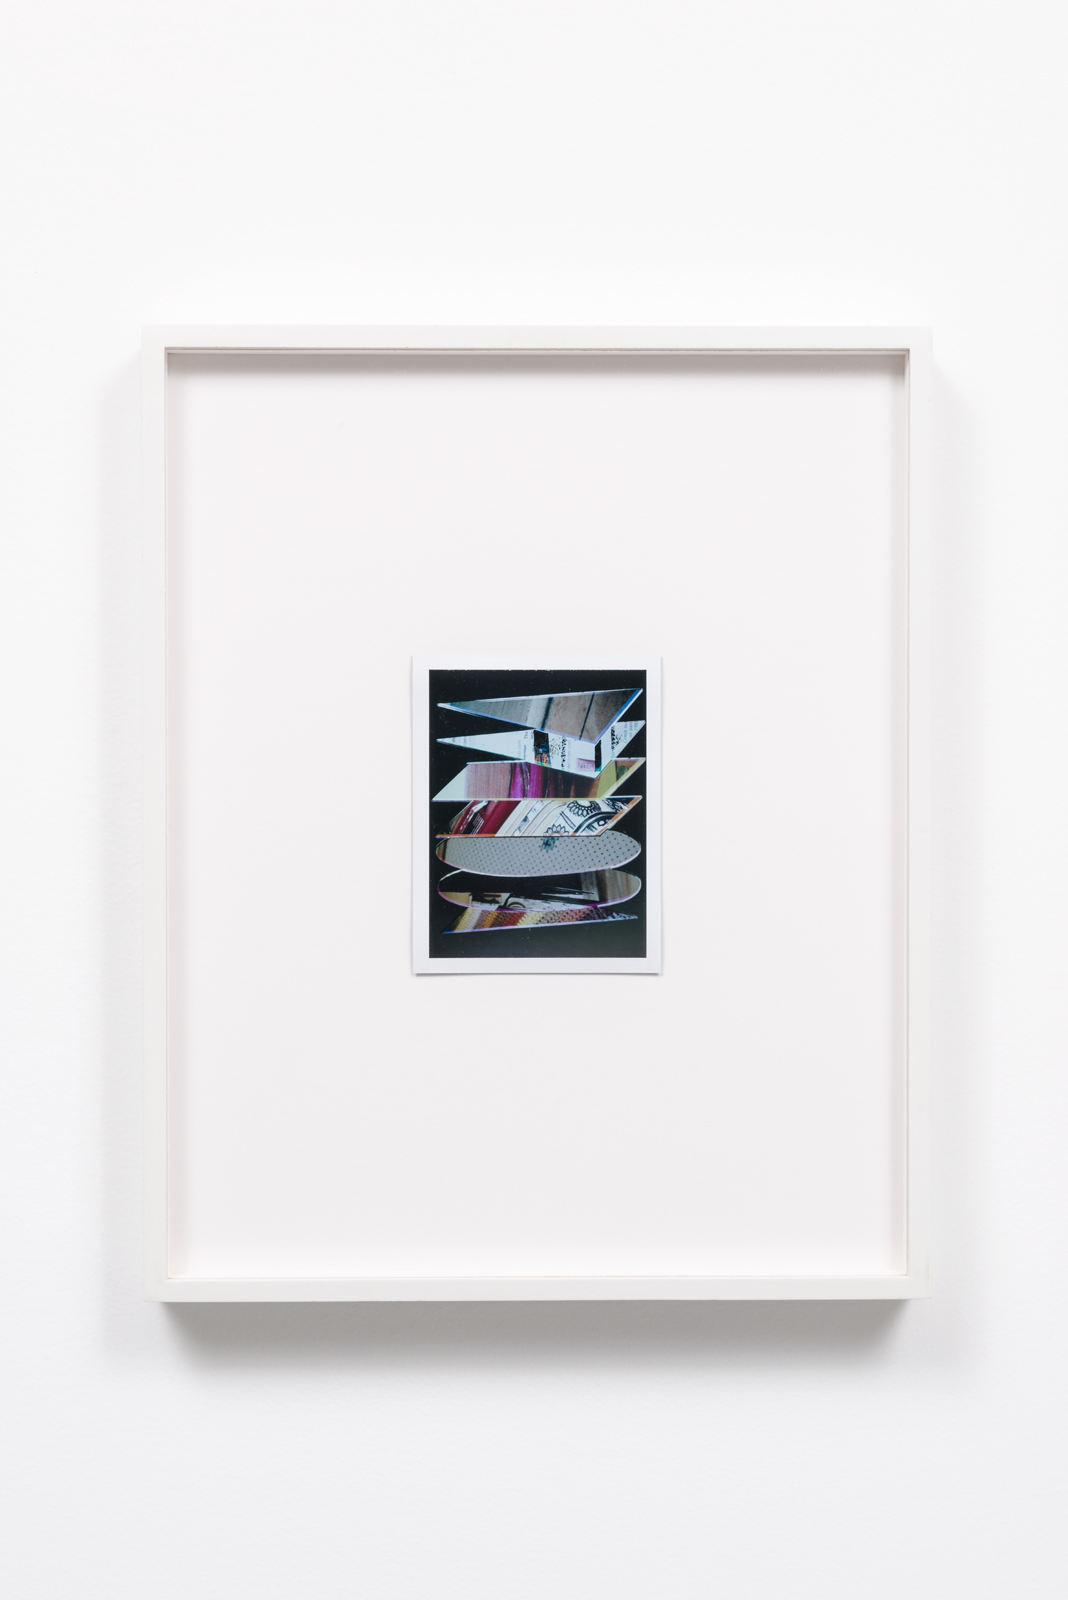 Cory Escoto, Tall Stack, 2014 Fuji color instant film print 5 x 4""